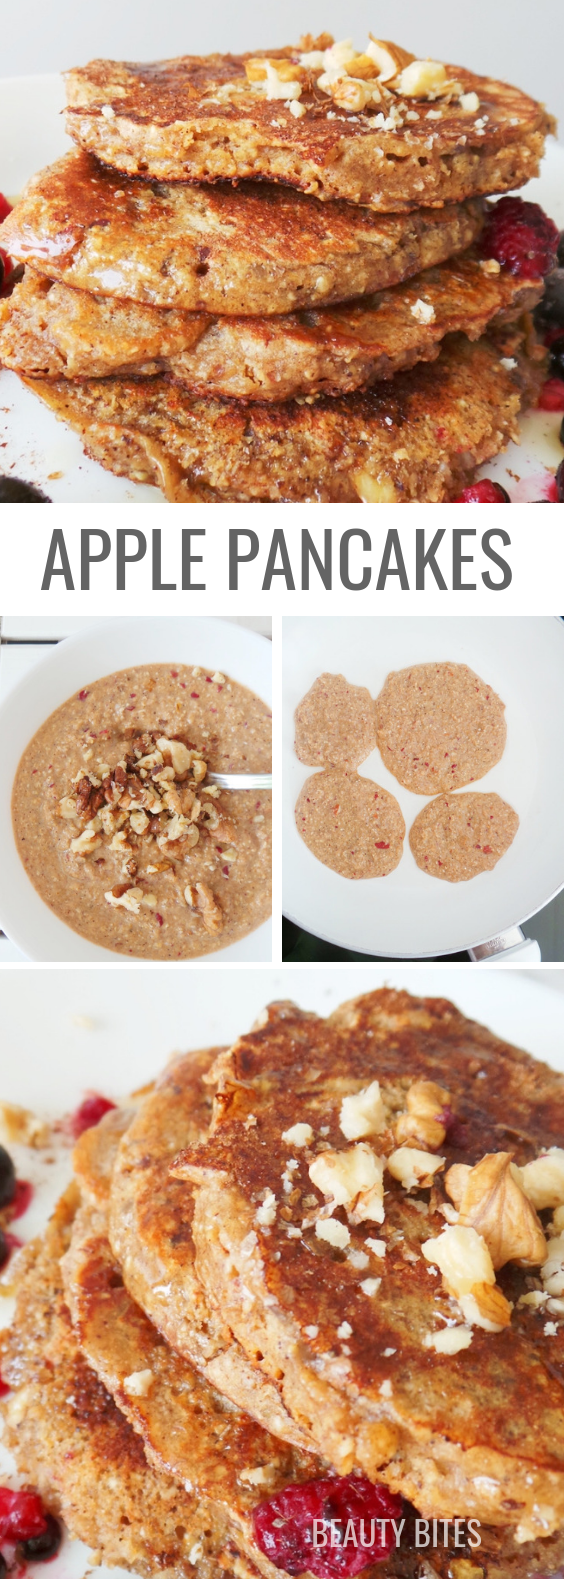 Easy & Healthy Apple Pancakes With Oats (Breakfast #breakfastideas